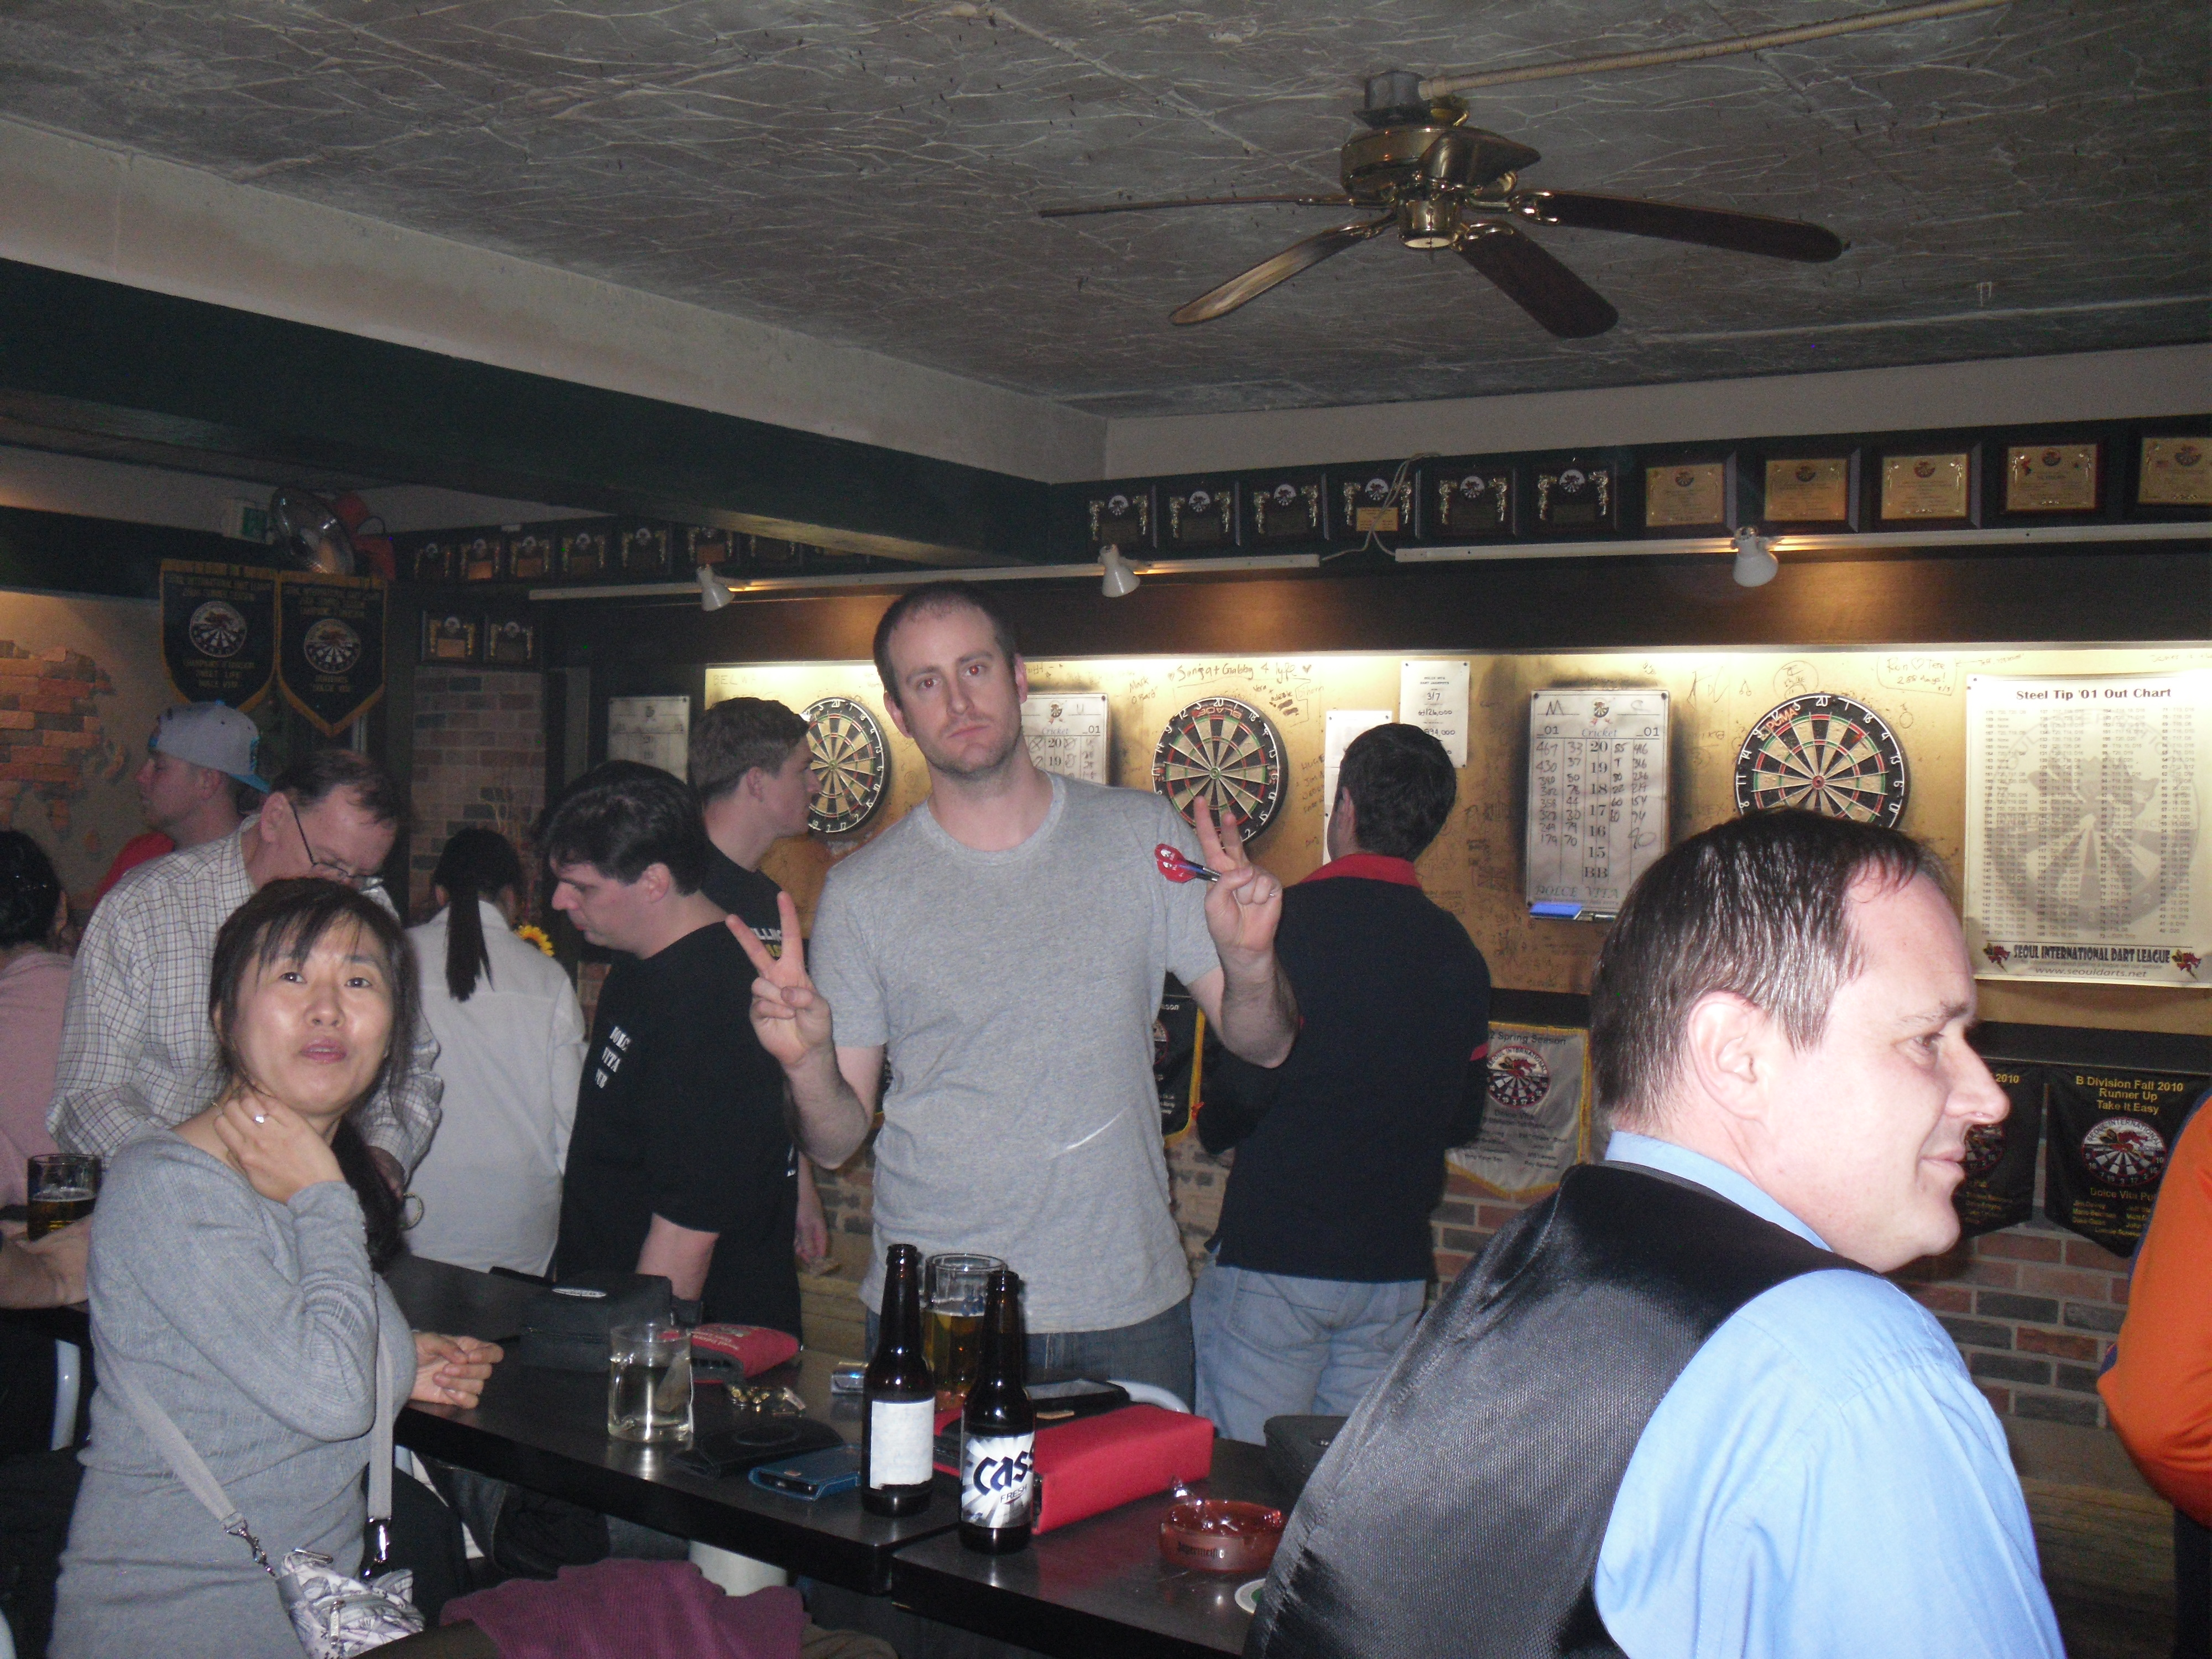 A larger than usual turnout for the Friday blind draw at Dolce Vita.